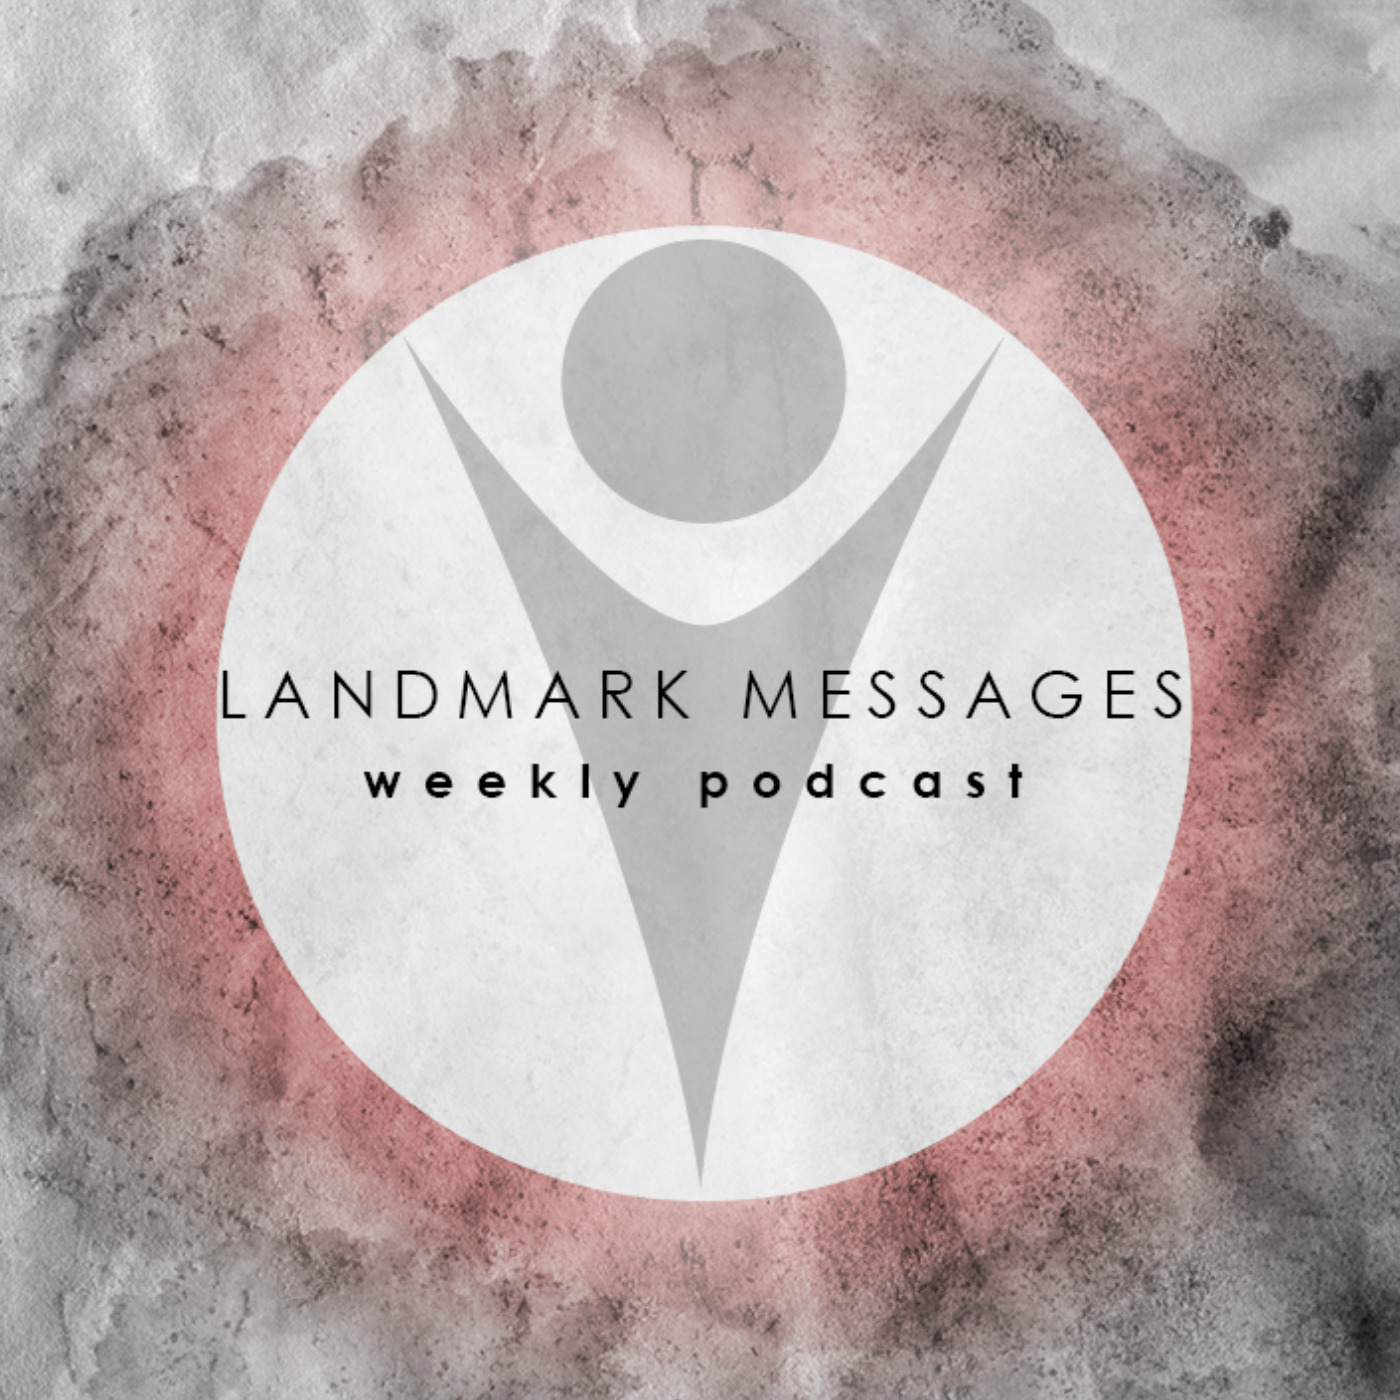 Landmark Messages